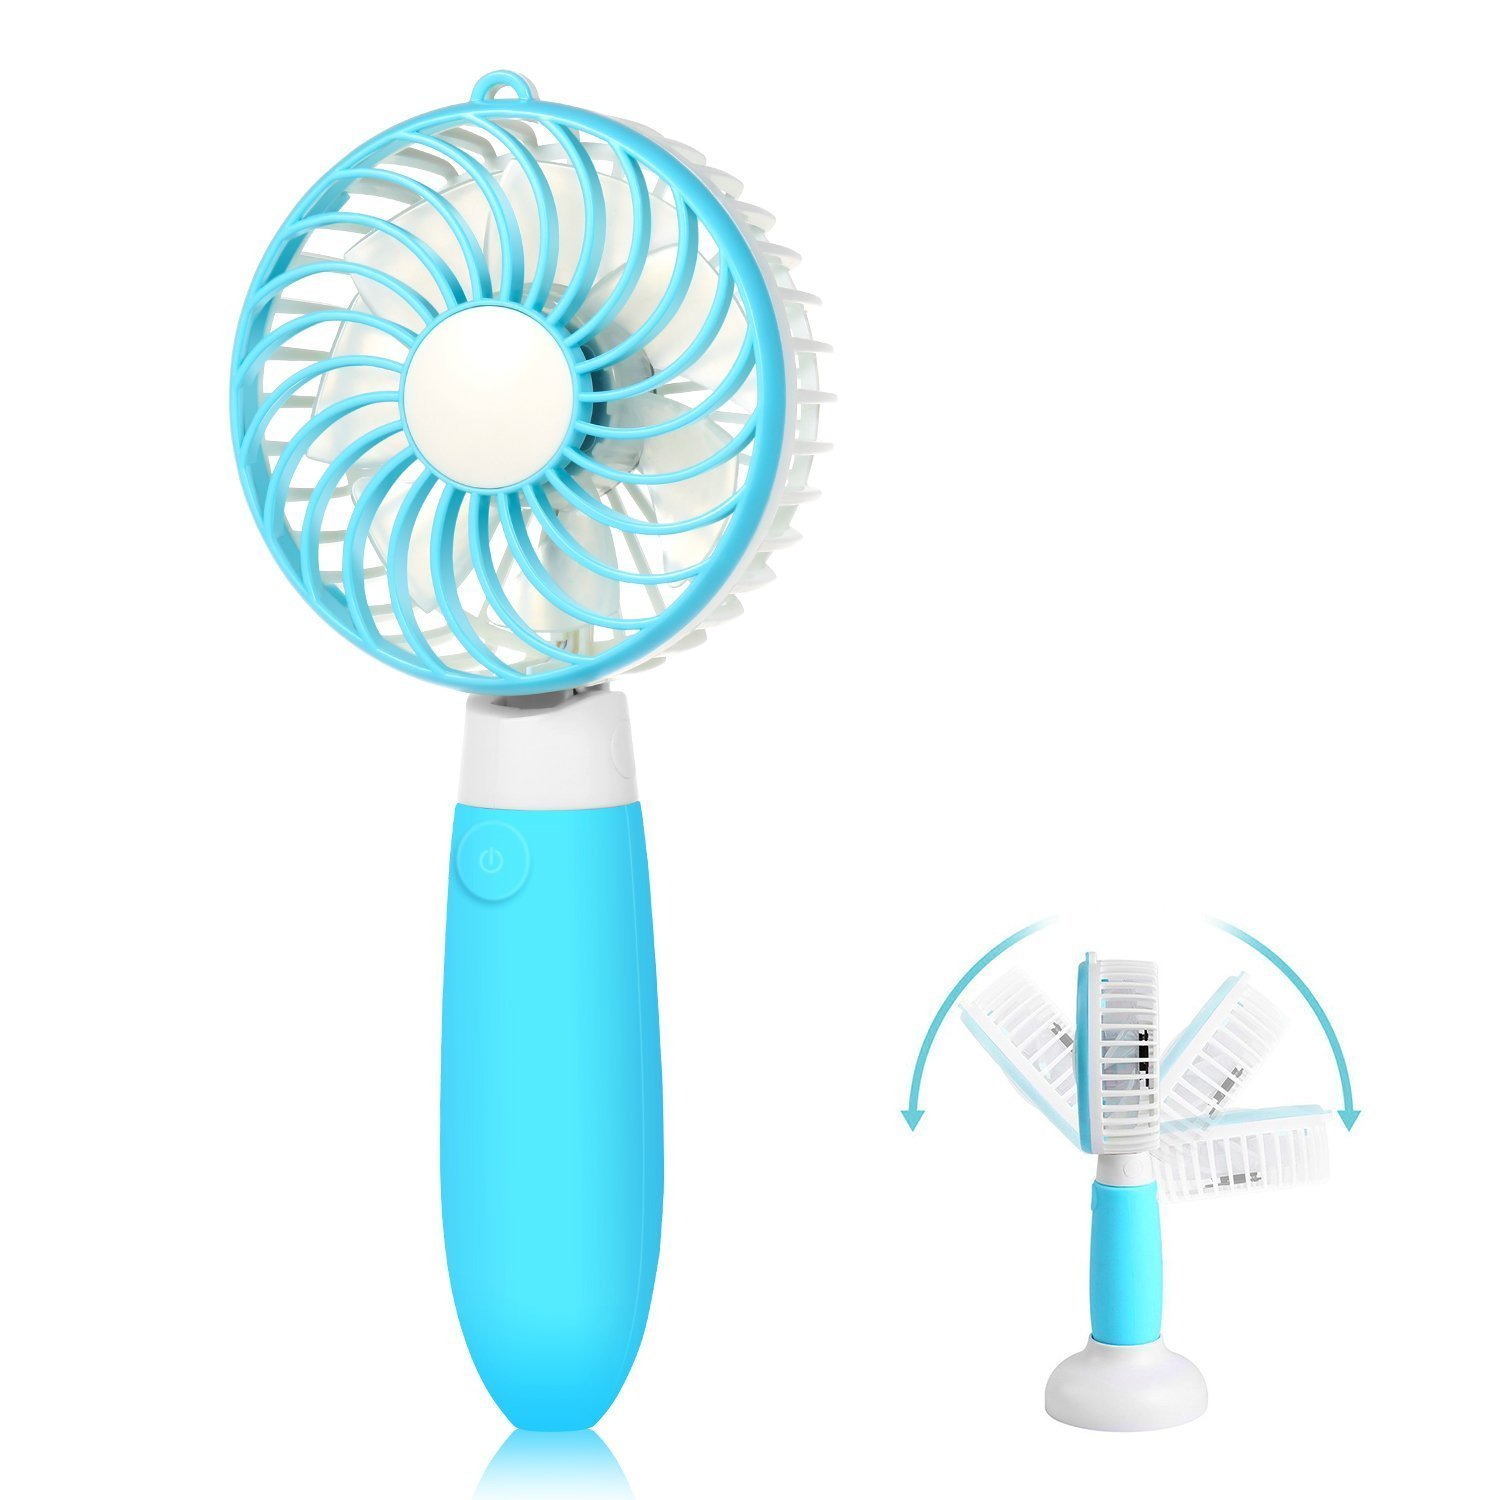 Mini Fan,Allkeys Personal Handheld Fan Battery Operated Portable Rechargeable USB with Base 3 Speeds for Home Office Outdoors Travel, 2018 Upgrade (Blue)